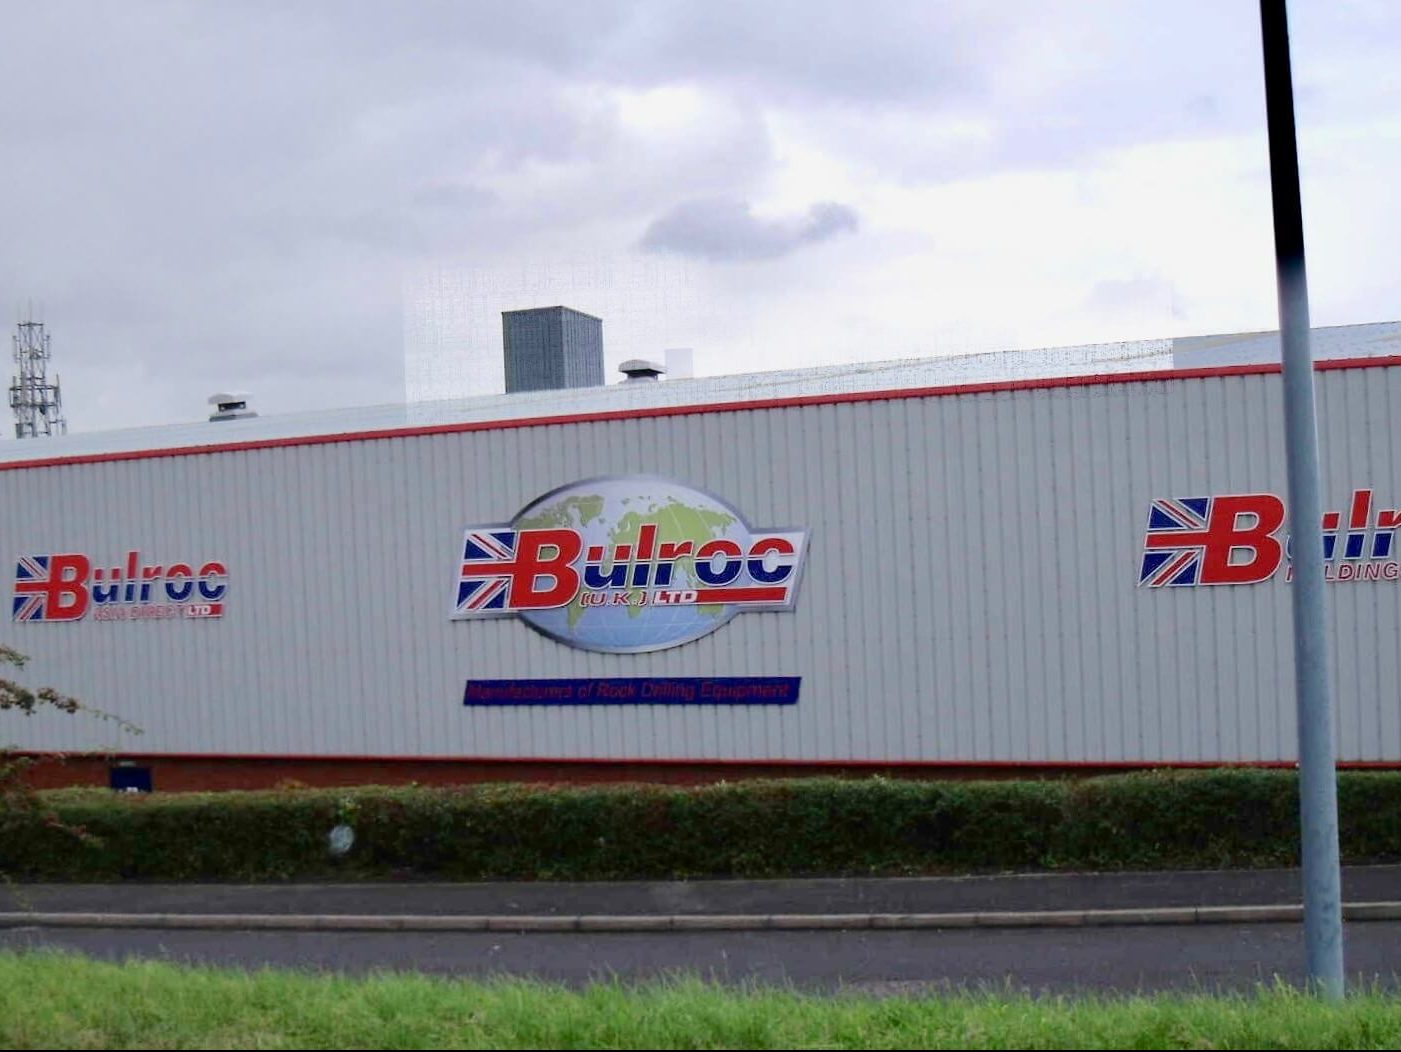 Bulroc UK Ltd